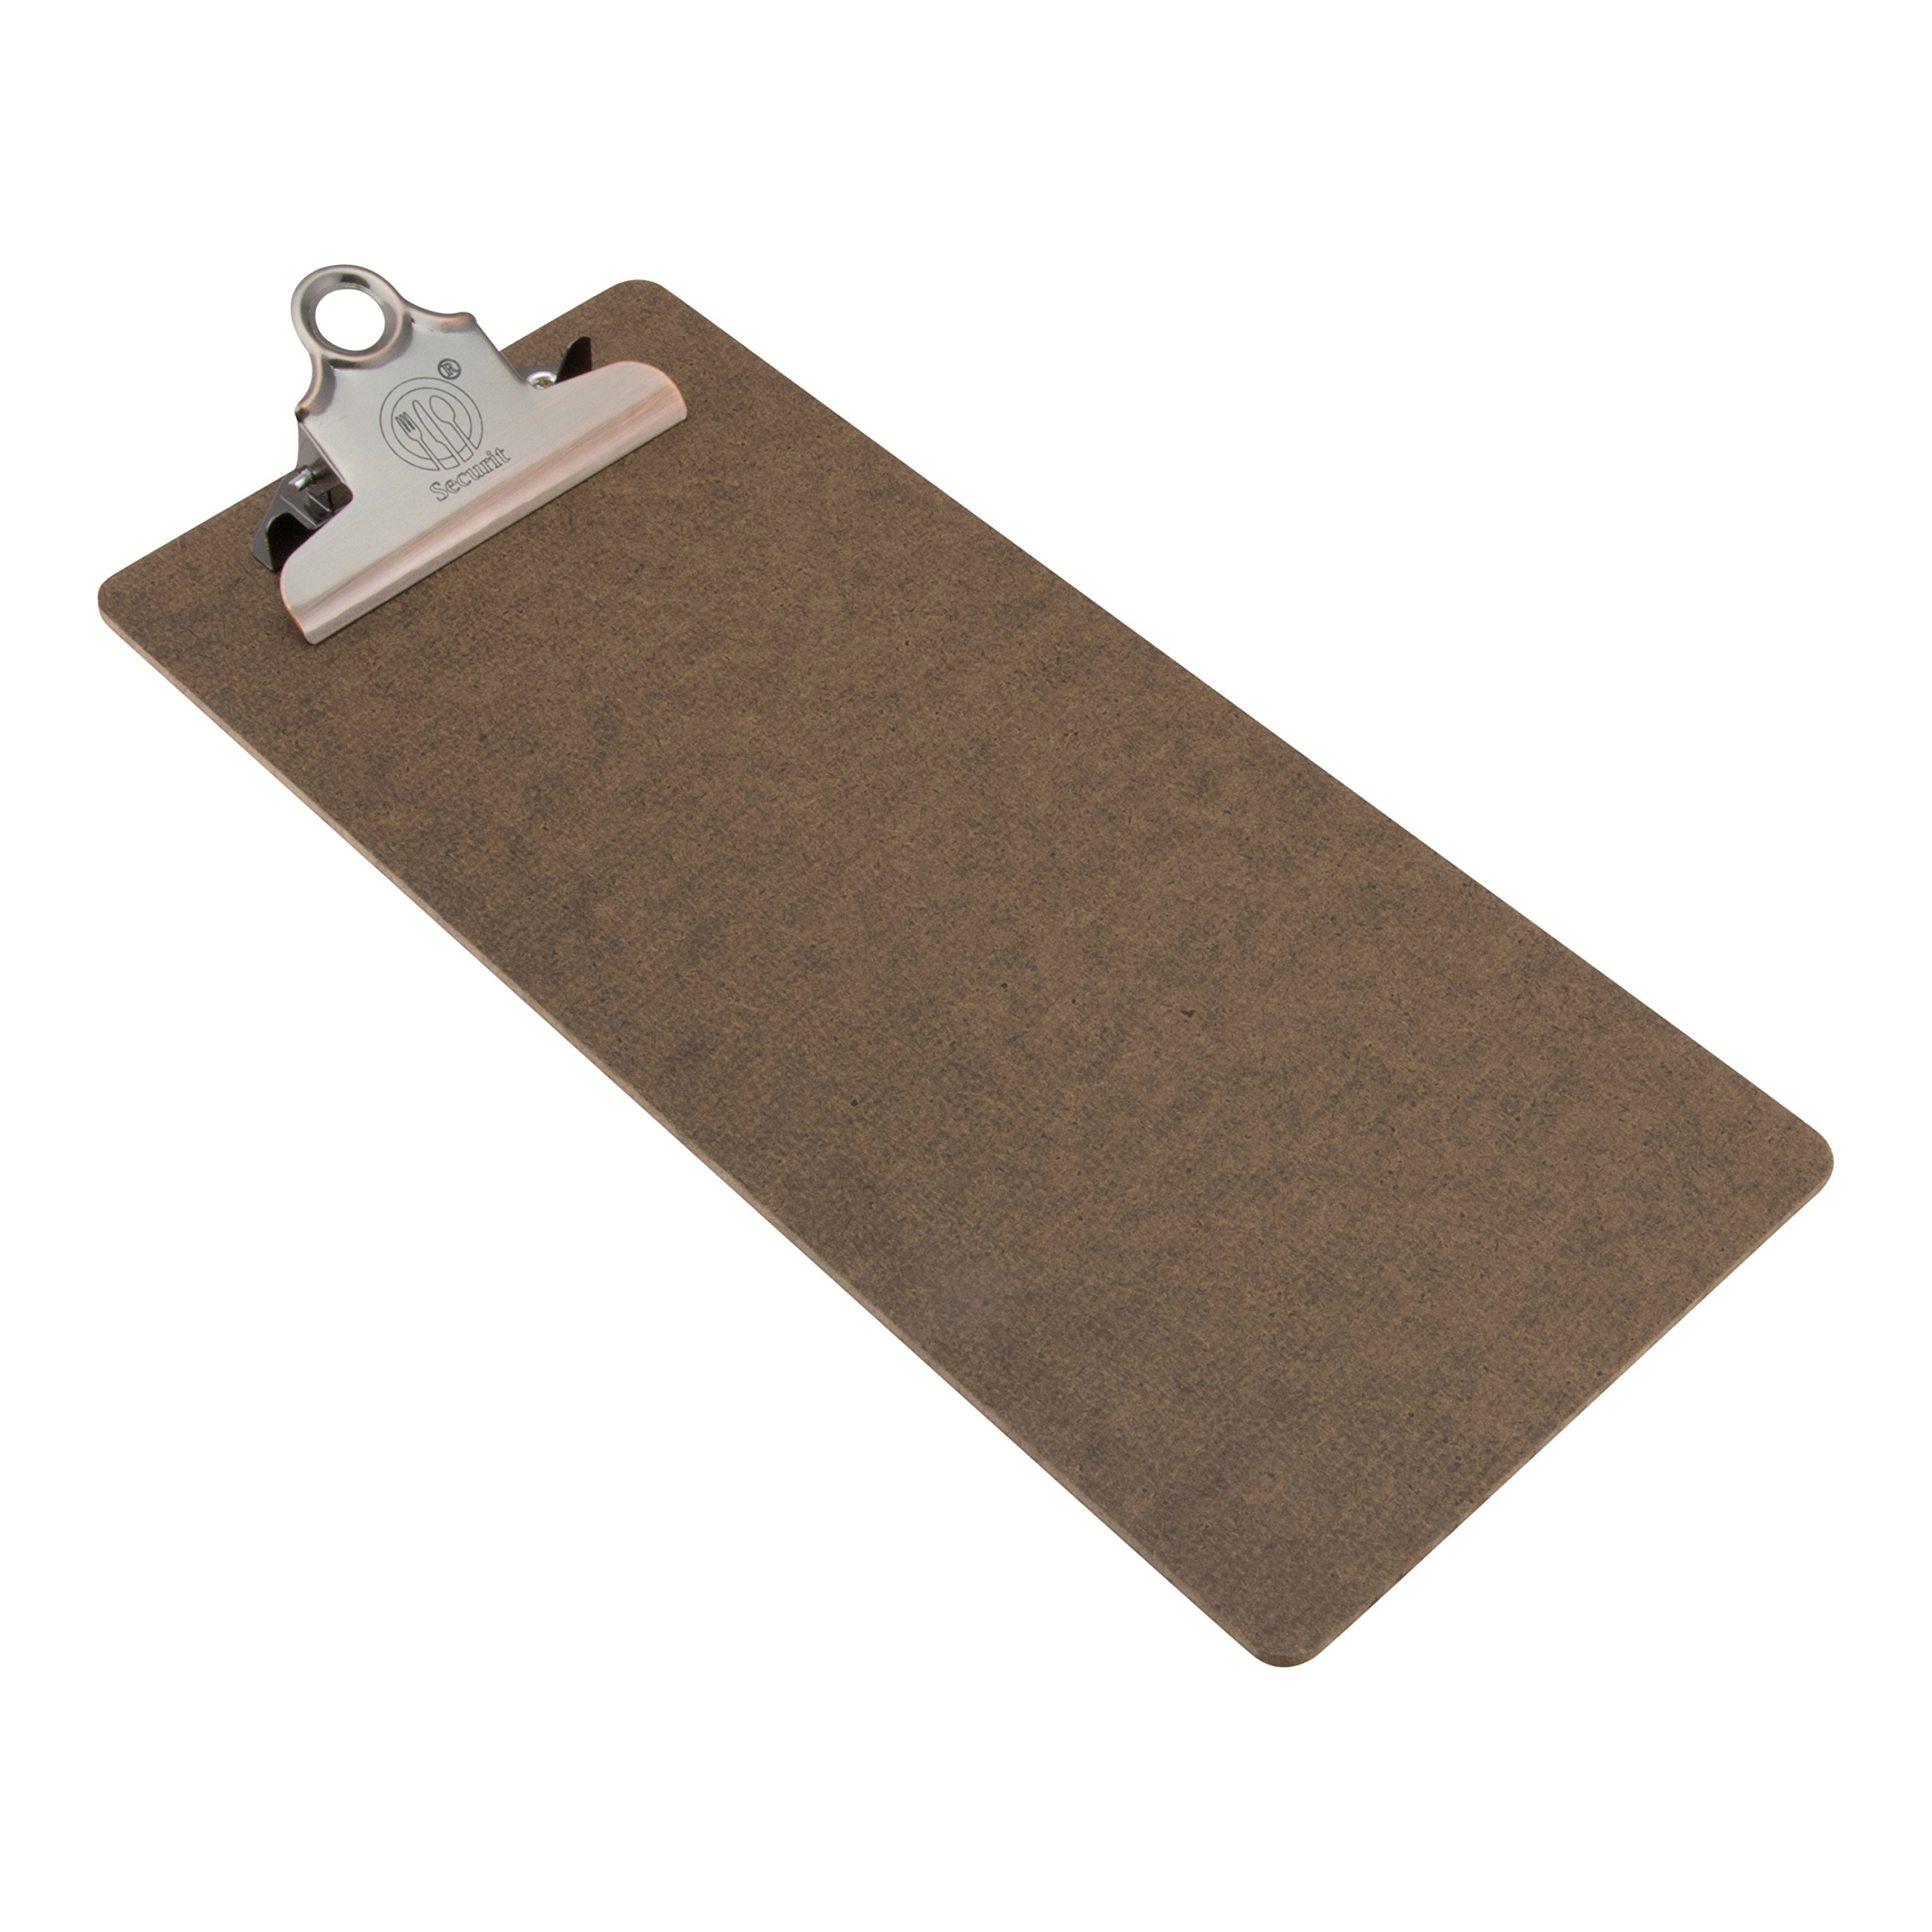 Set of 10 - Wooden Check Presenter - Bill Presenter - Guest Check Presenter - Restaurant Check Clip Board